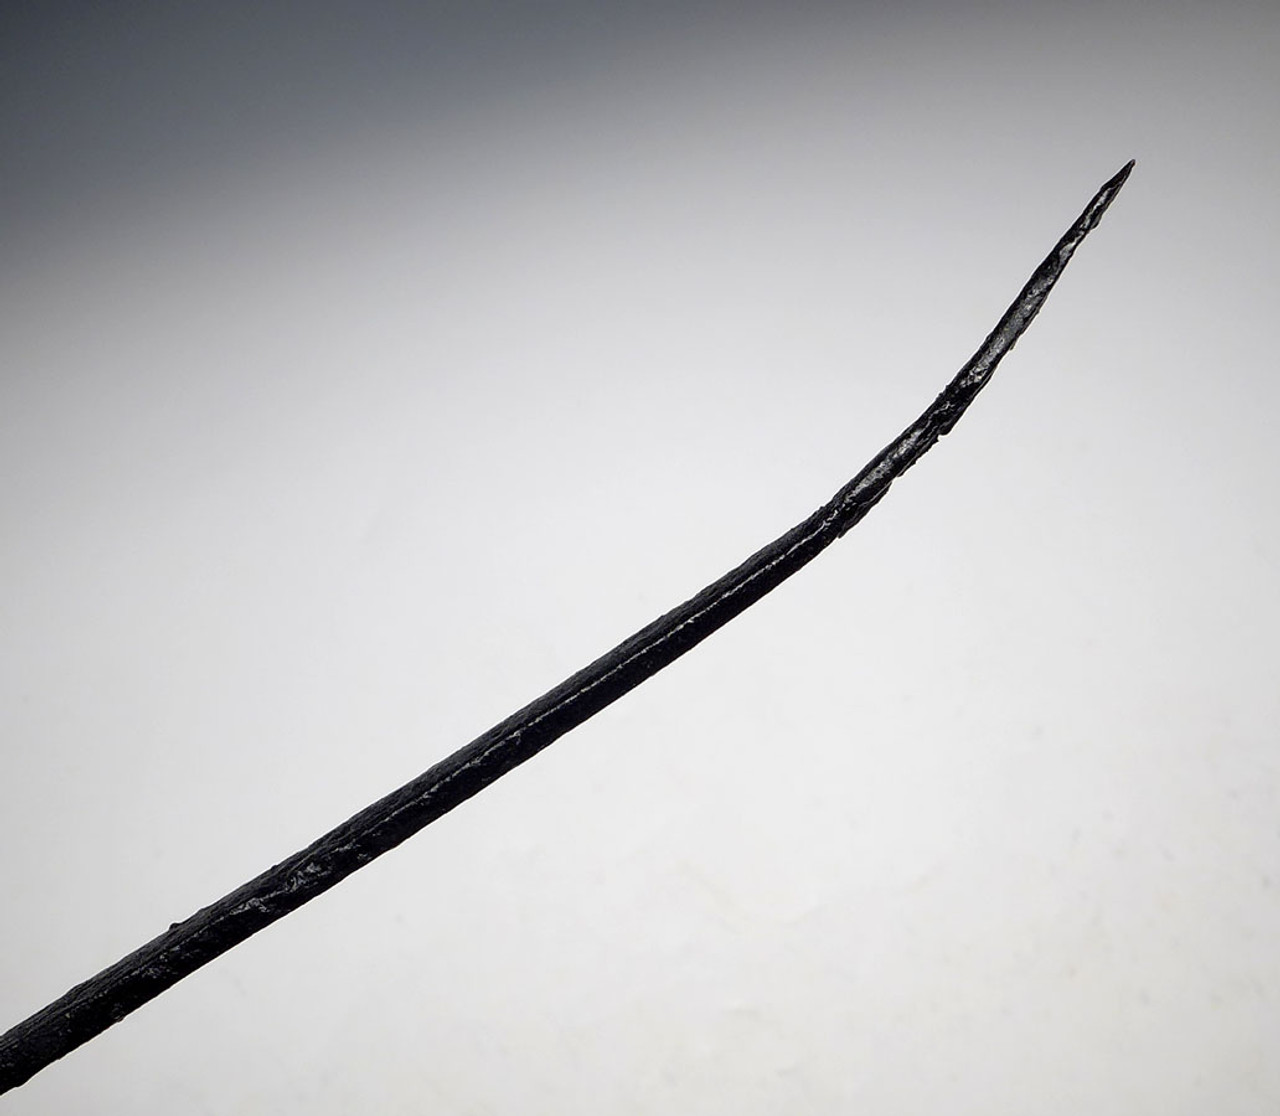 LARGE BATTLE DAMAGED ANCIENT ACHAEMENID IRON KNIFE FROM THE FIRST PERSIAN EMPIRE  *R271